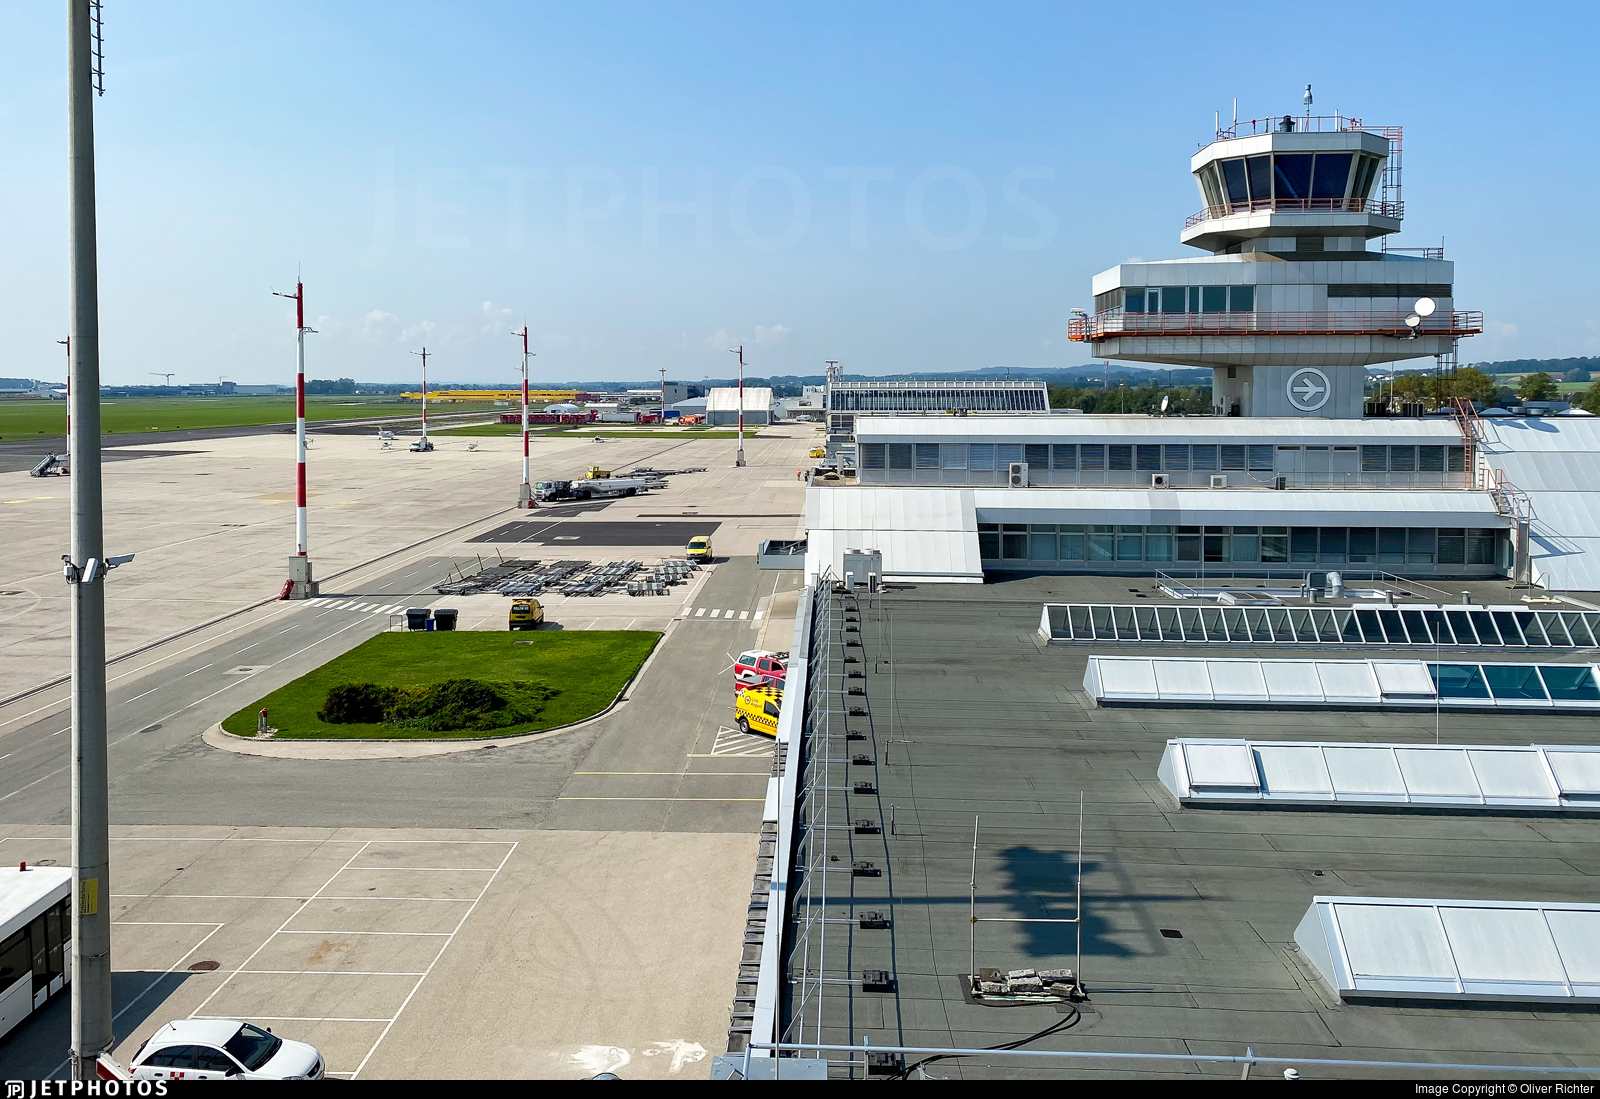 LOWL - Airport - Airport Overview